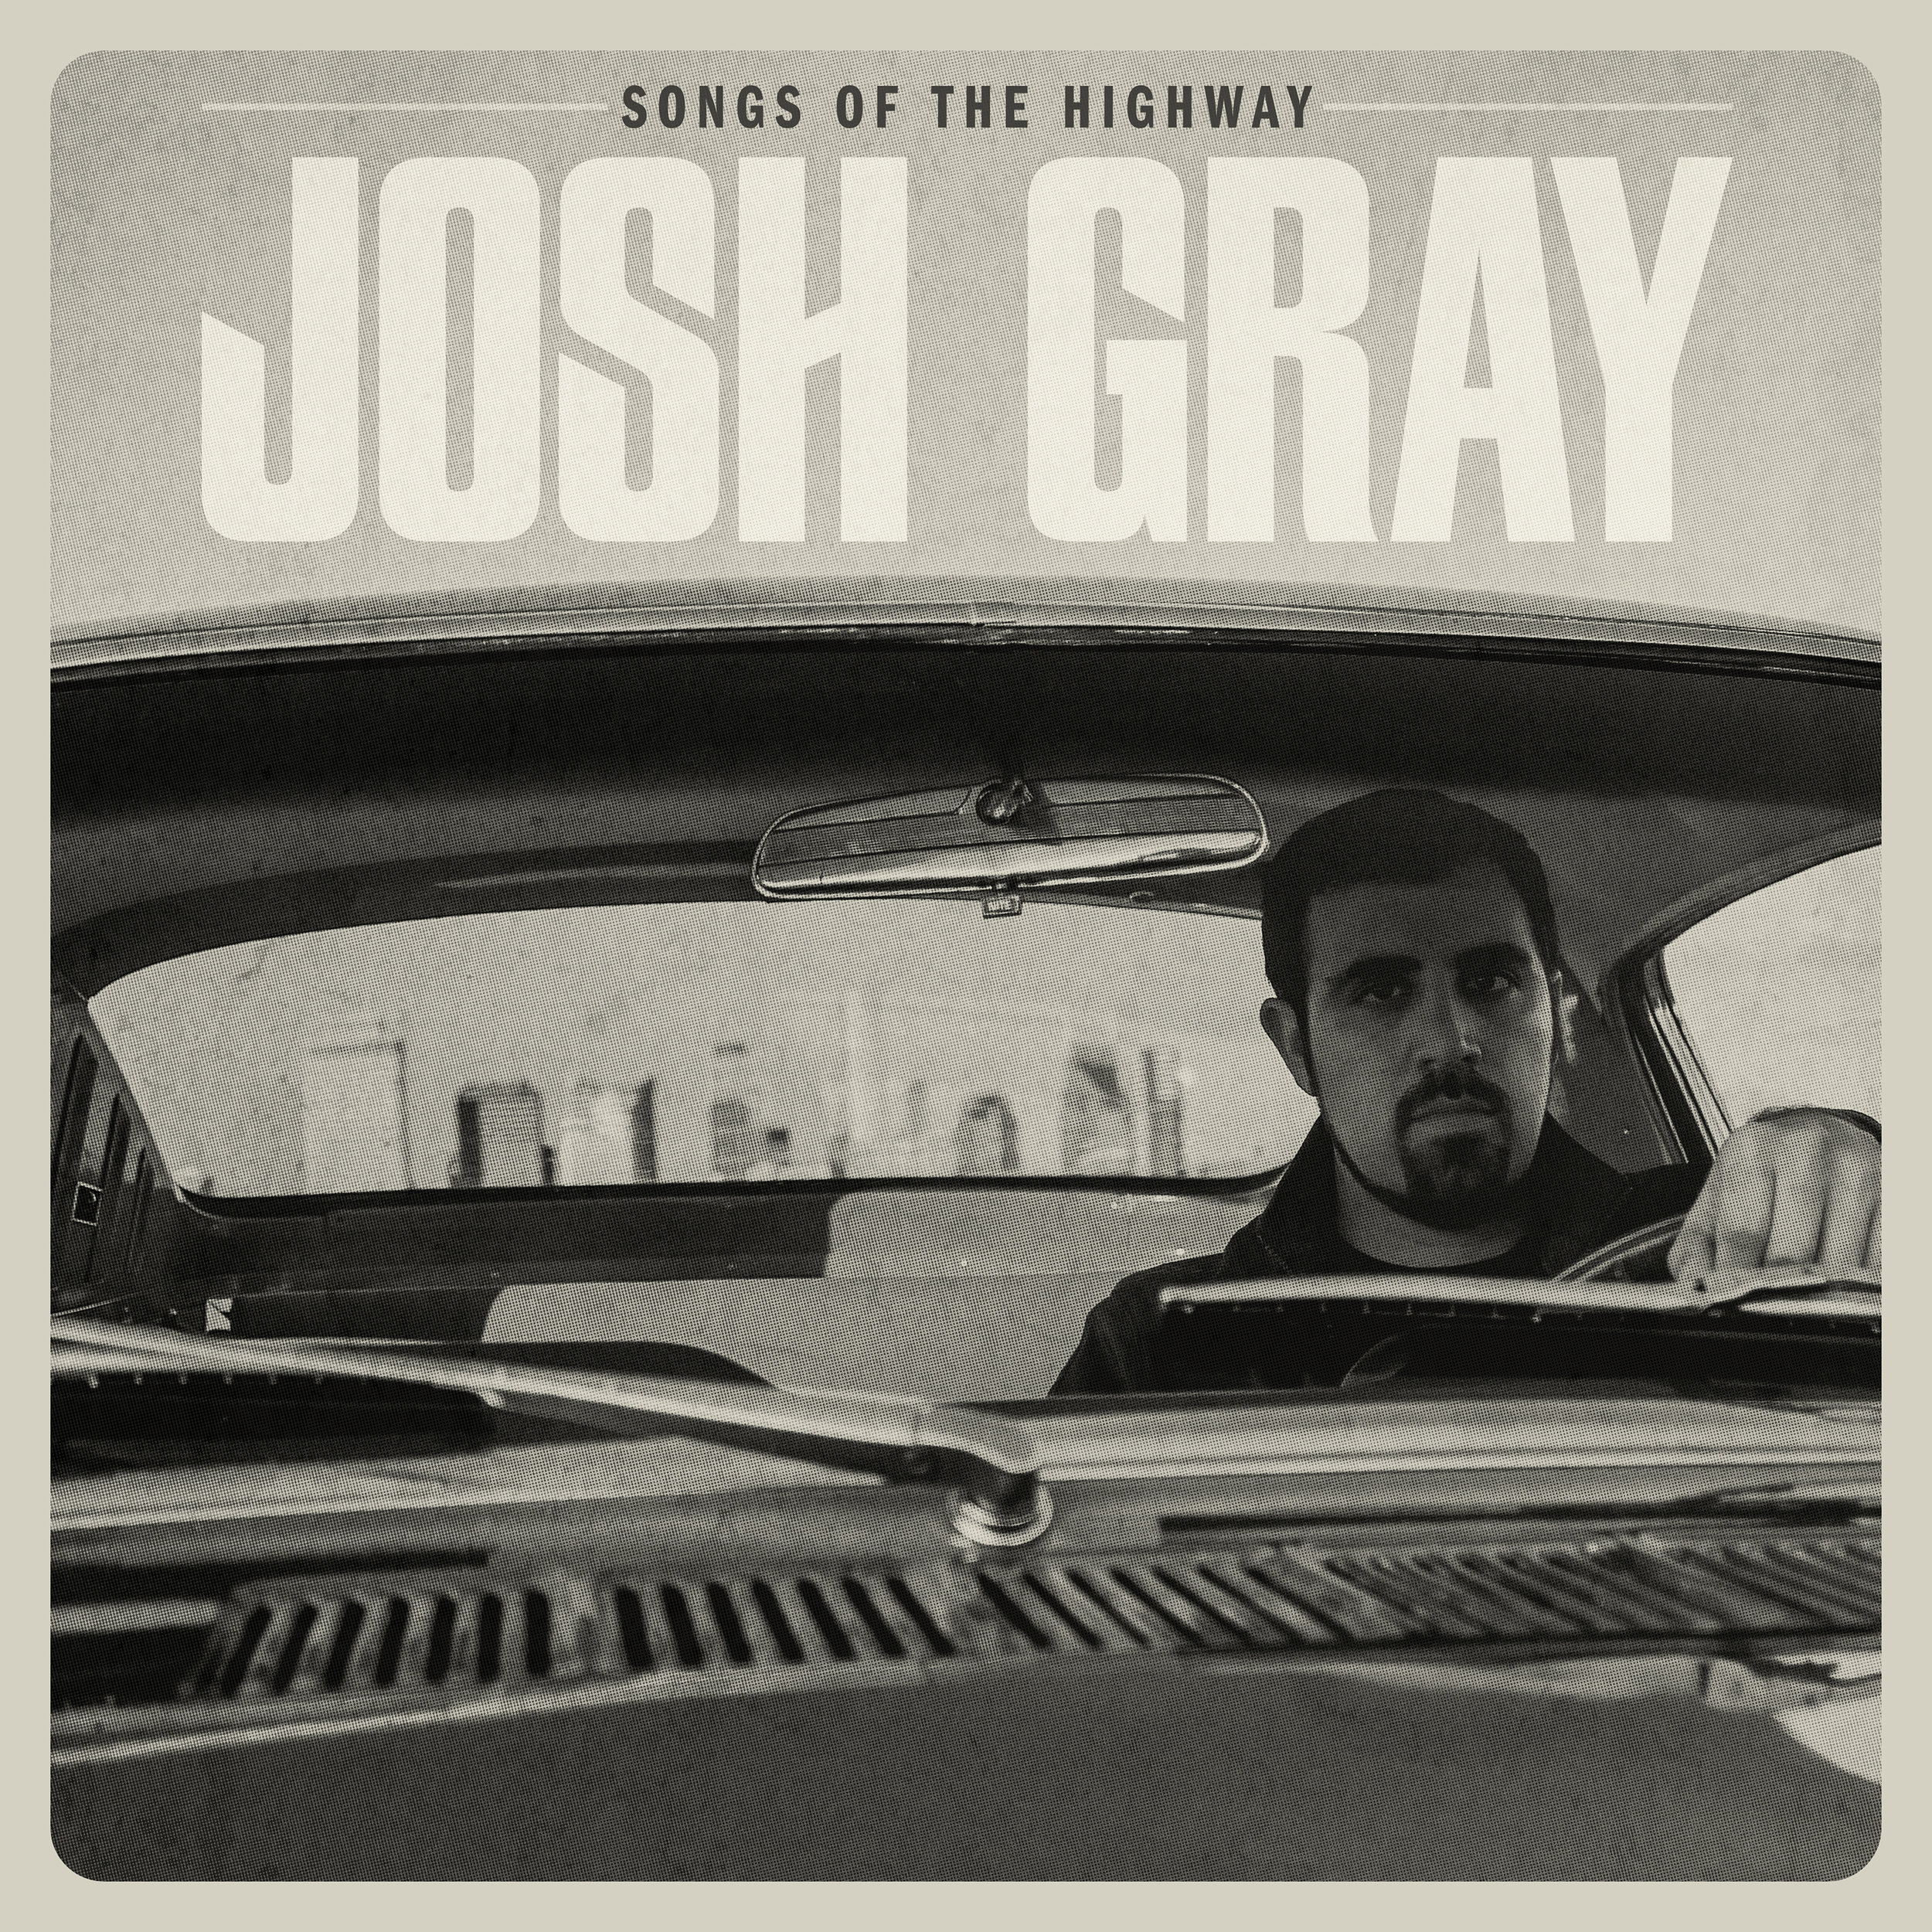 Josh Gray - Album: Songs of the HighwayRelease date: April 16th, 2019